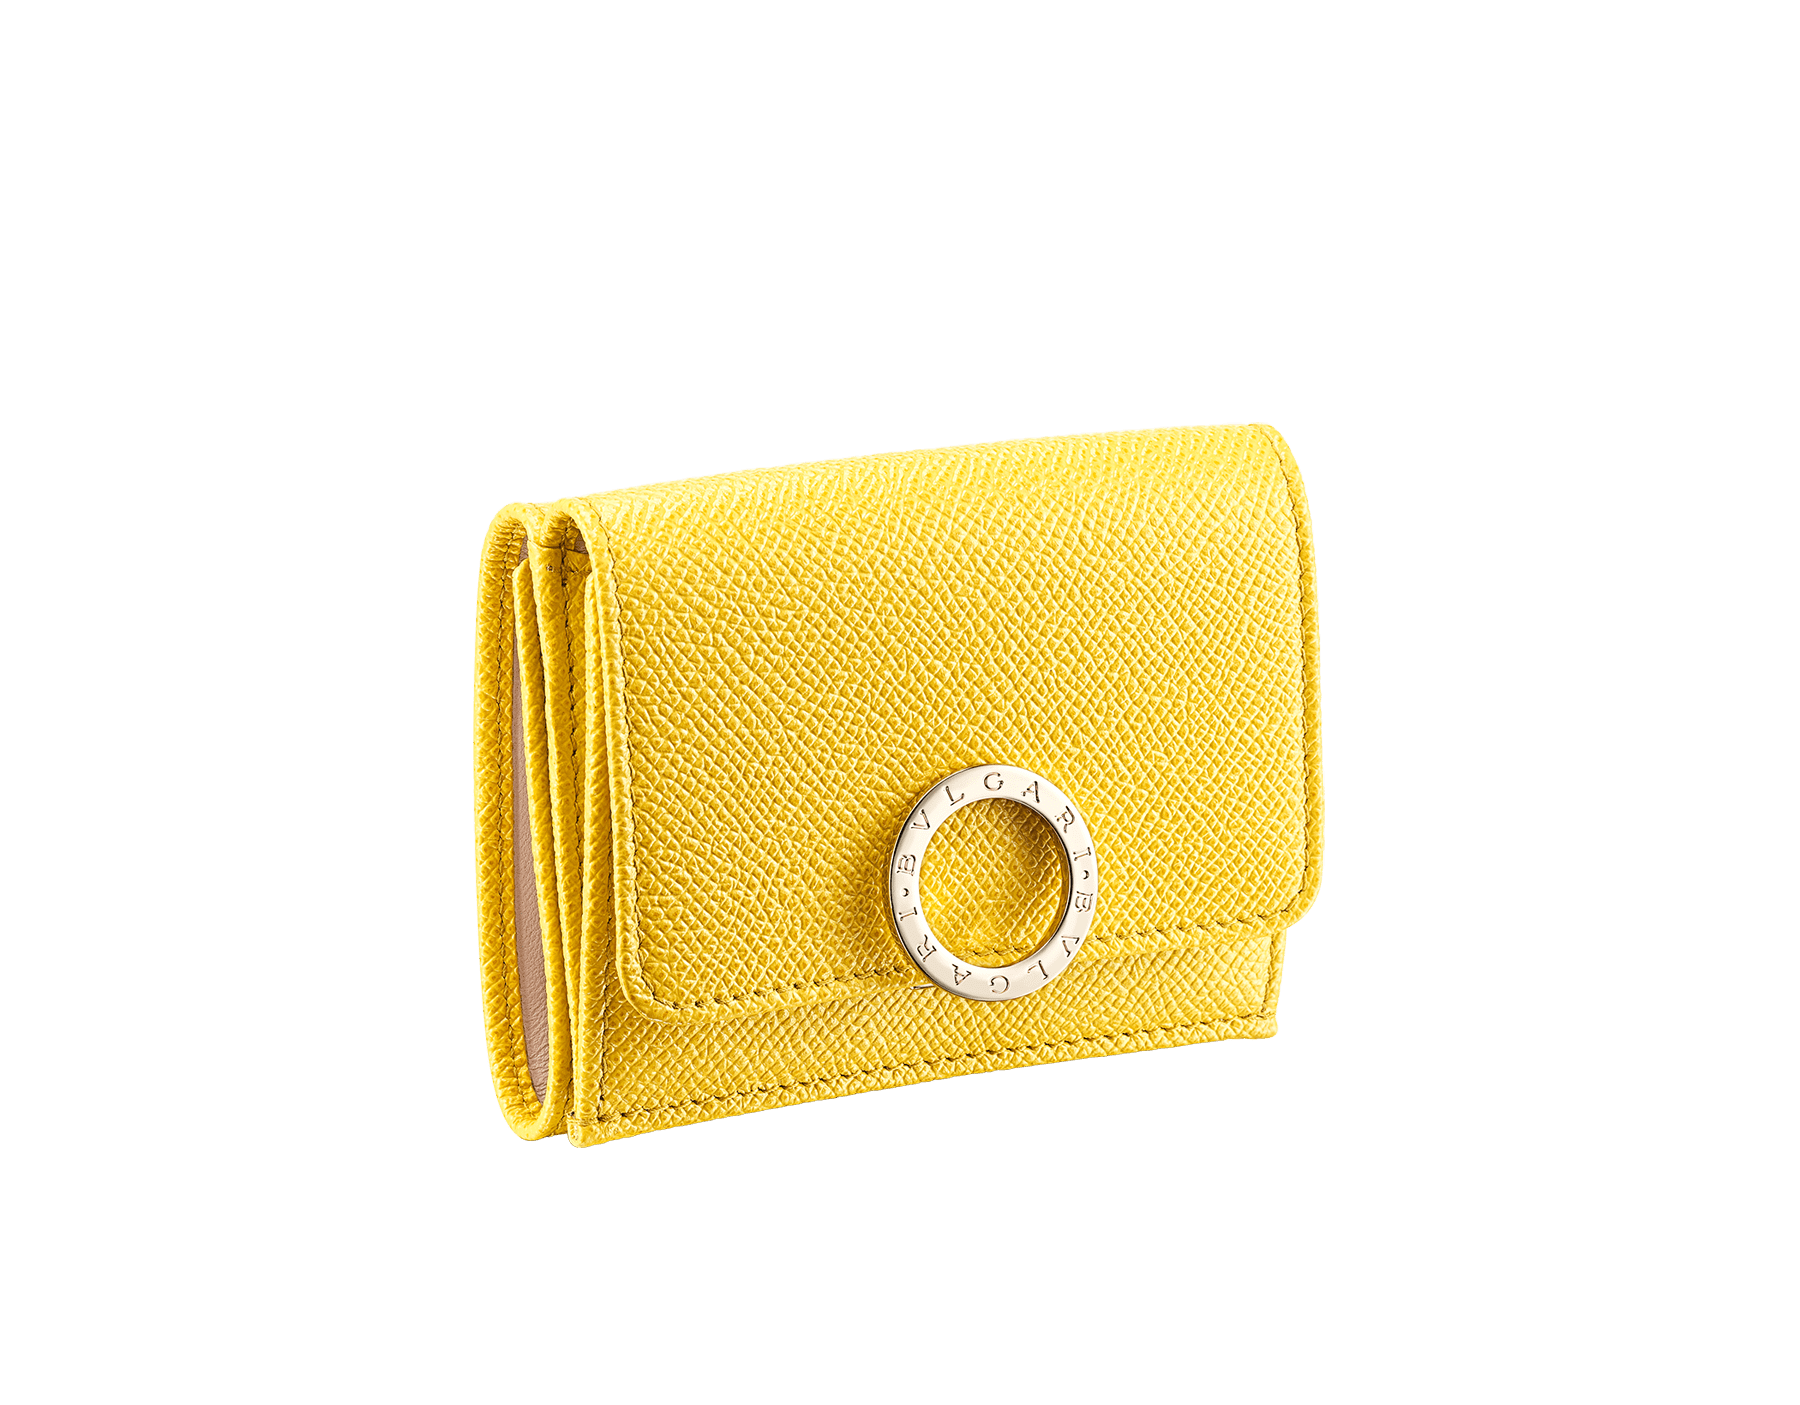 BVLGARI BVLGARI compact wallet in mint bright grain calf leather and taffy quartz nappa leather. Iconic logo clip closure in light gold plated brass on the flap and a press stud closure on the body. 579-MINICOMPACTb image 1